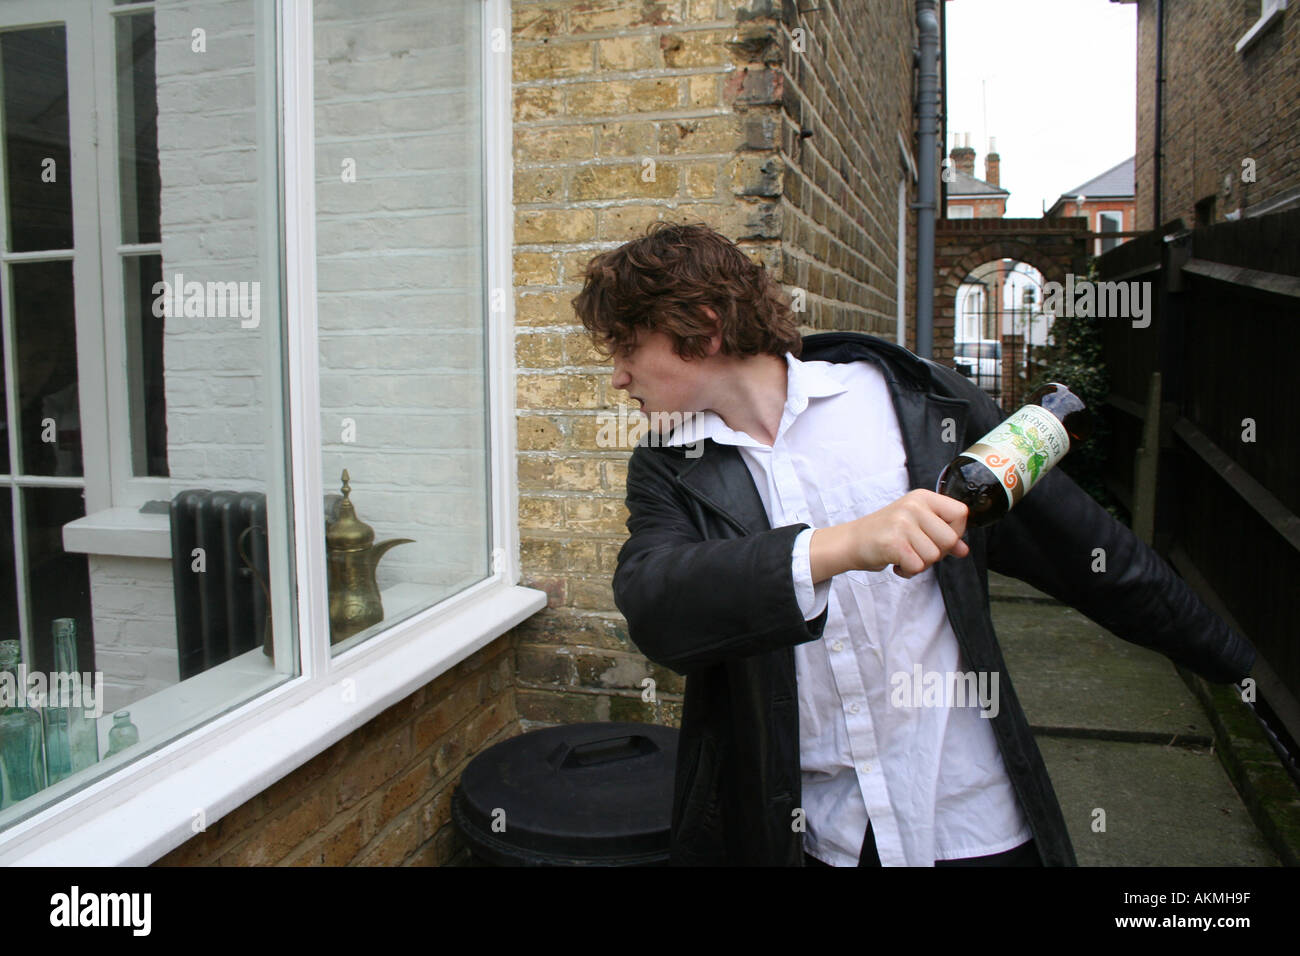 Young burglar breaking into a home with a bottle - Stock Image